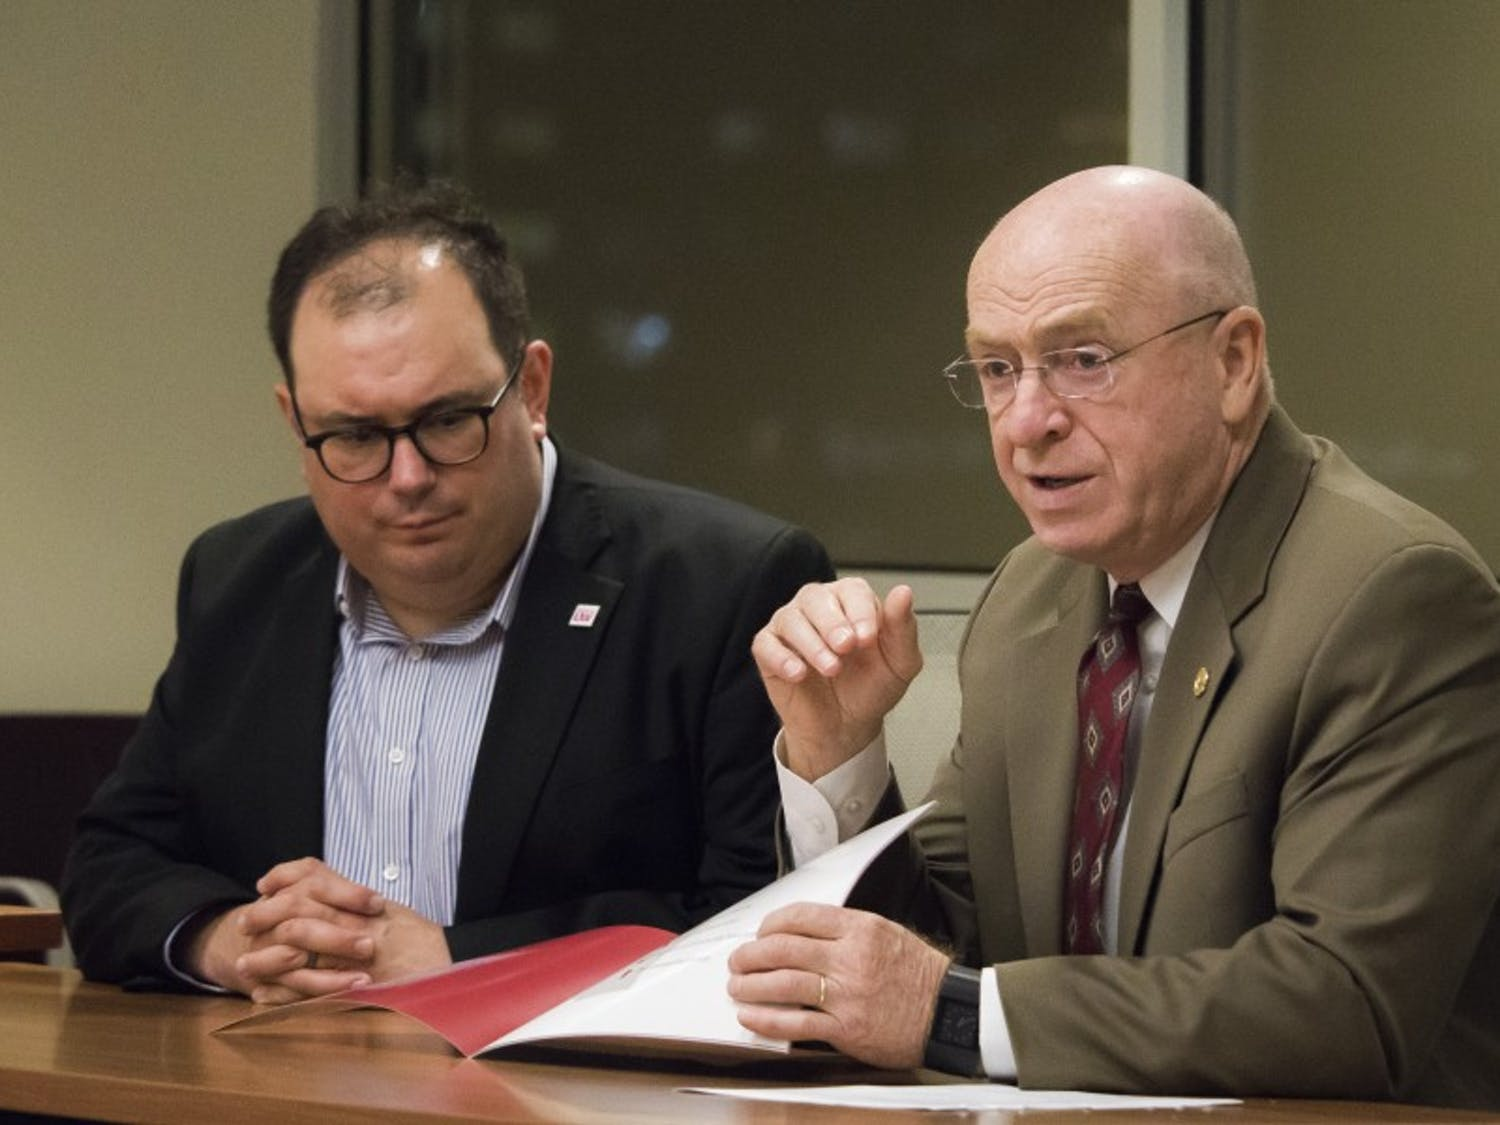 A recent deal with the Education Advisory Board and the UW System will utilize new advising software to target help towards low retention and graduation rates across UW campuses.